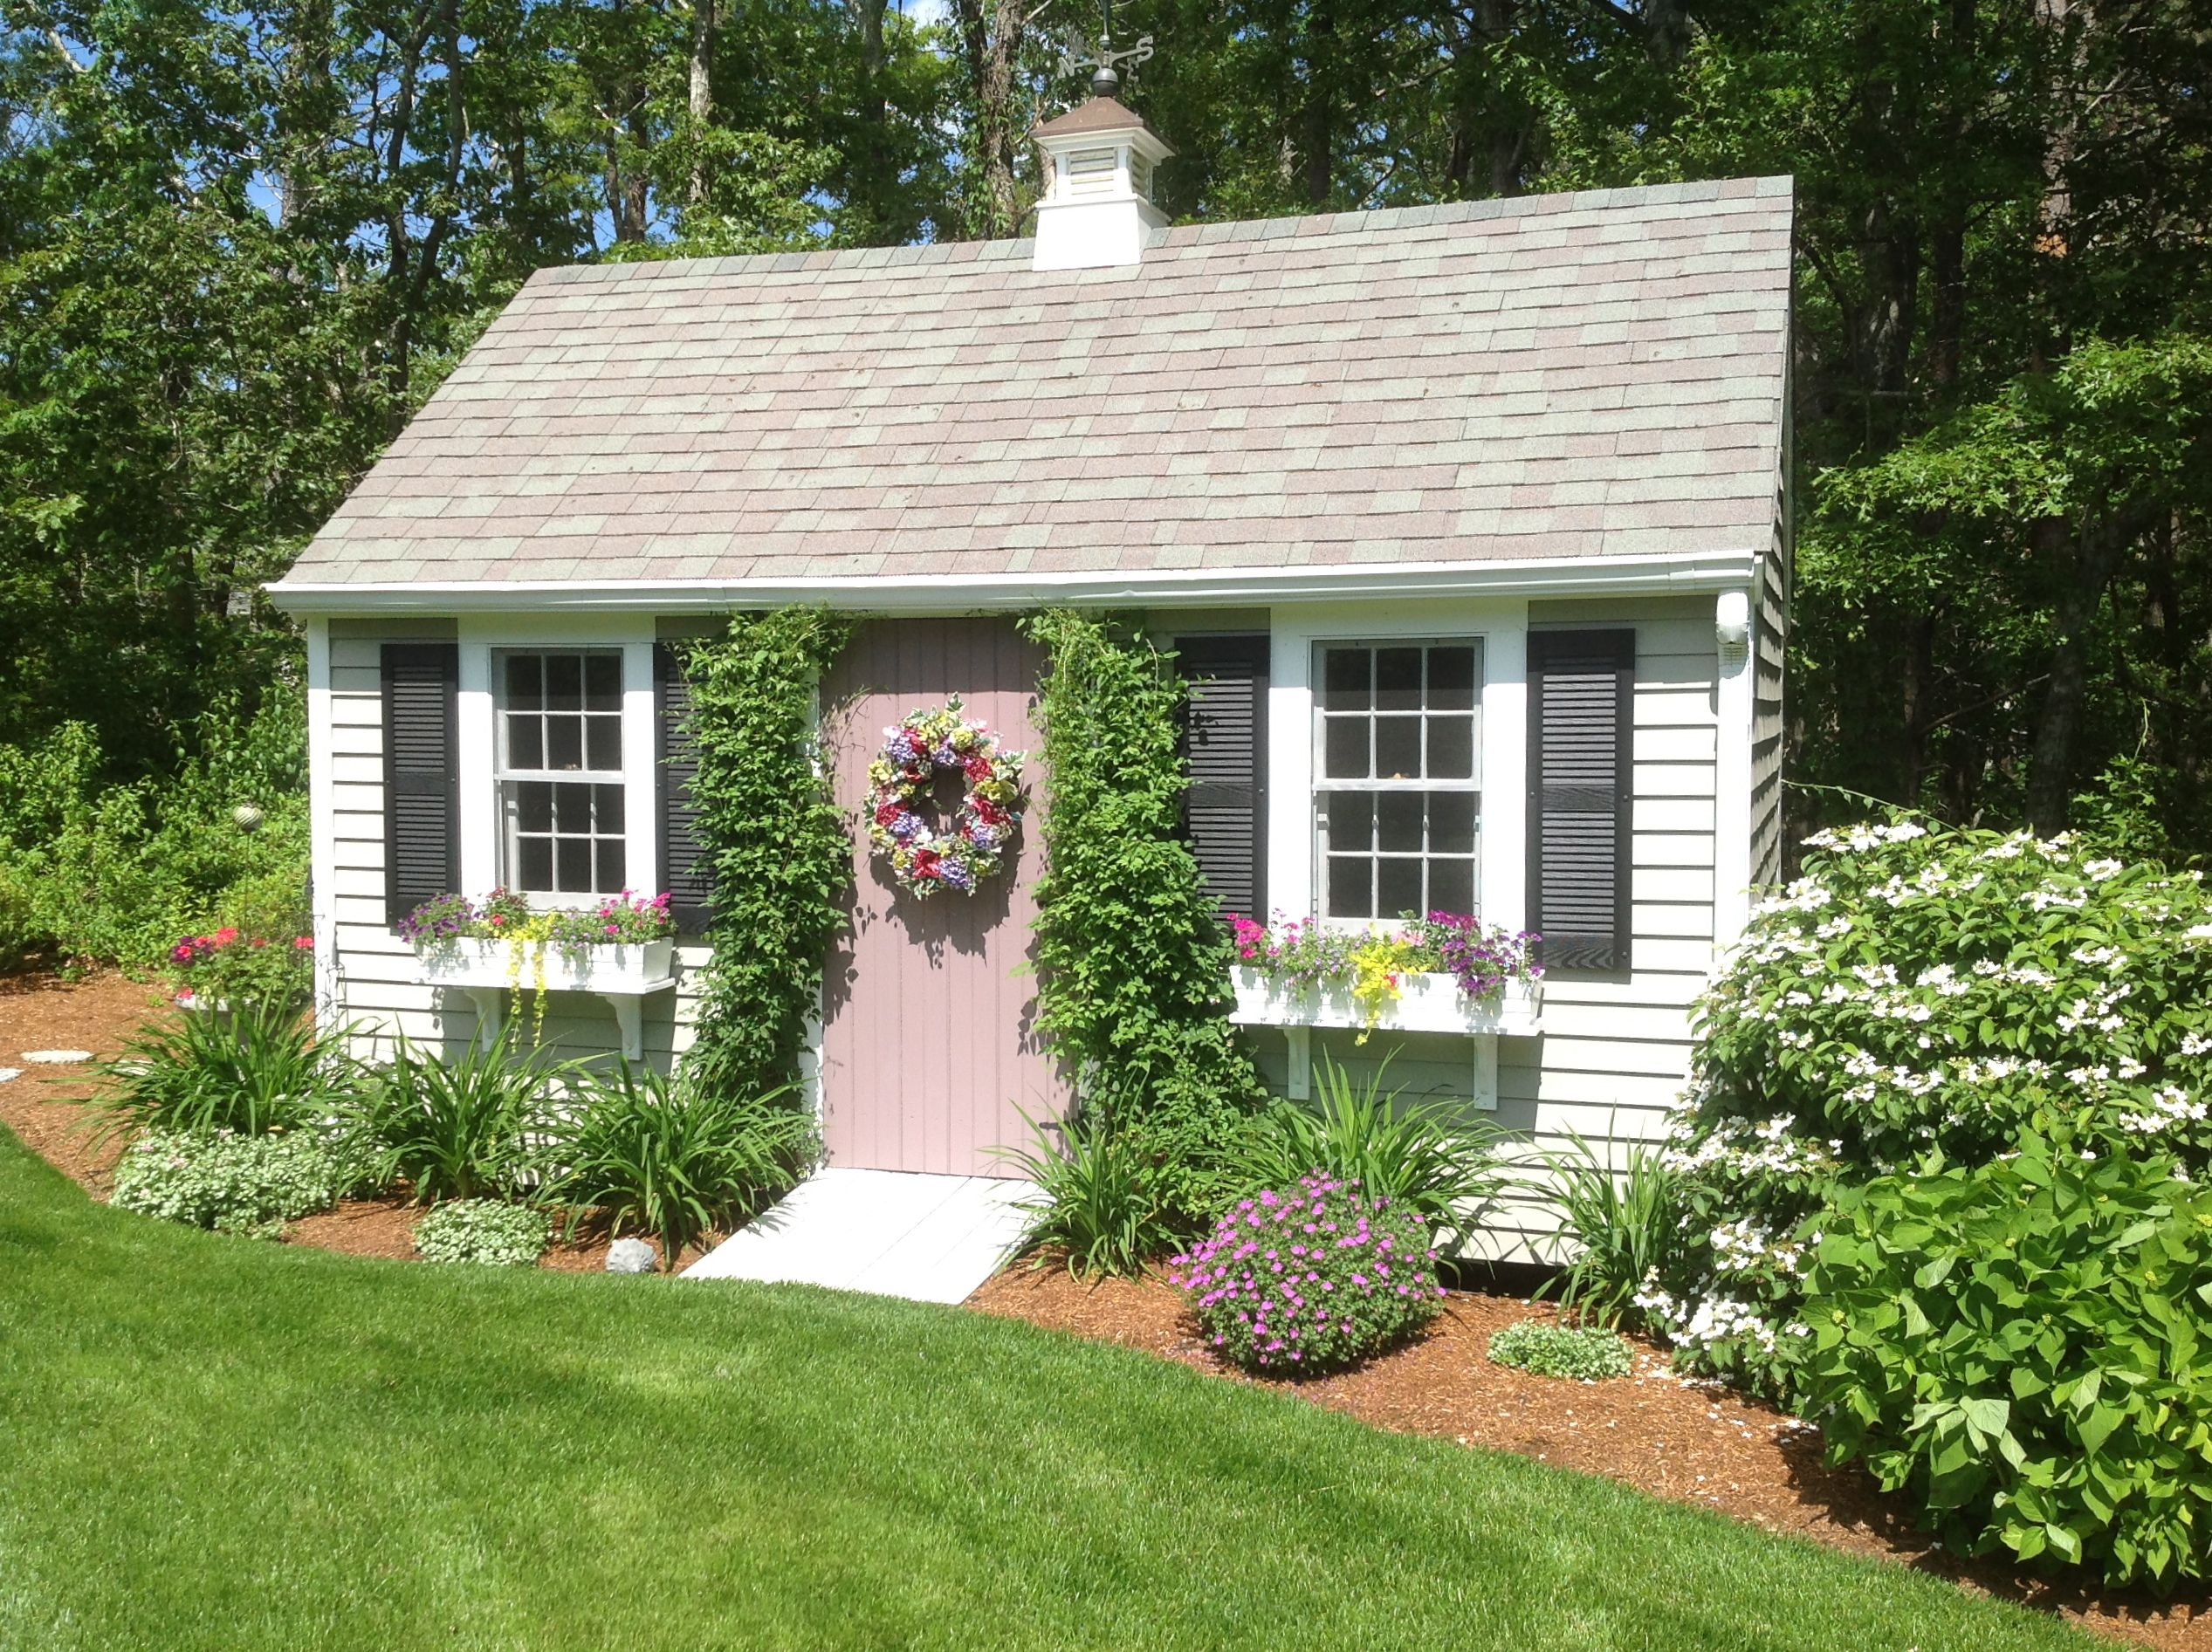 Pine Harbor Creates High Quality Sheds And Shed Kits, New